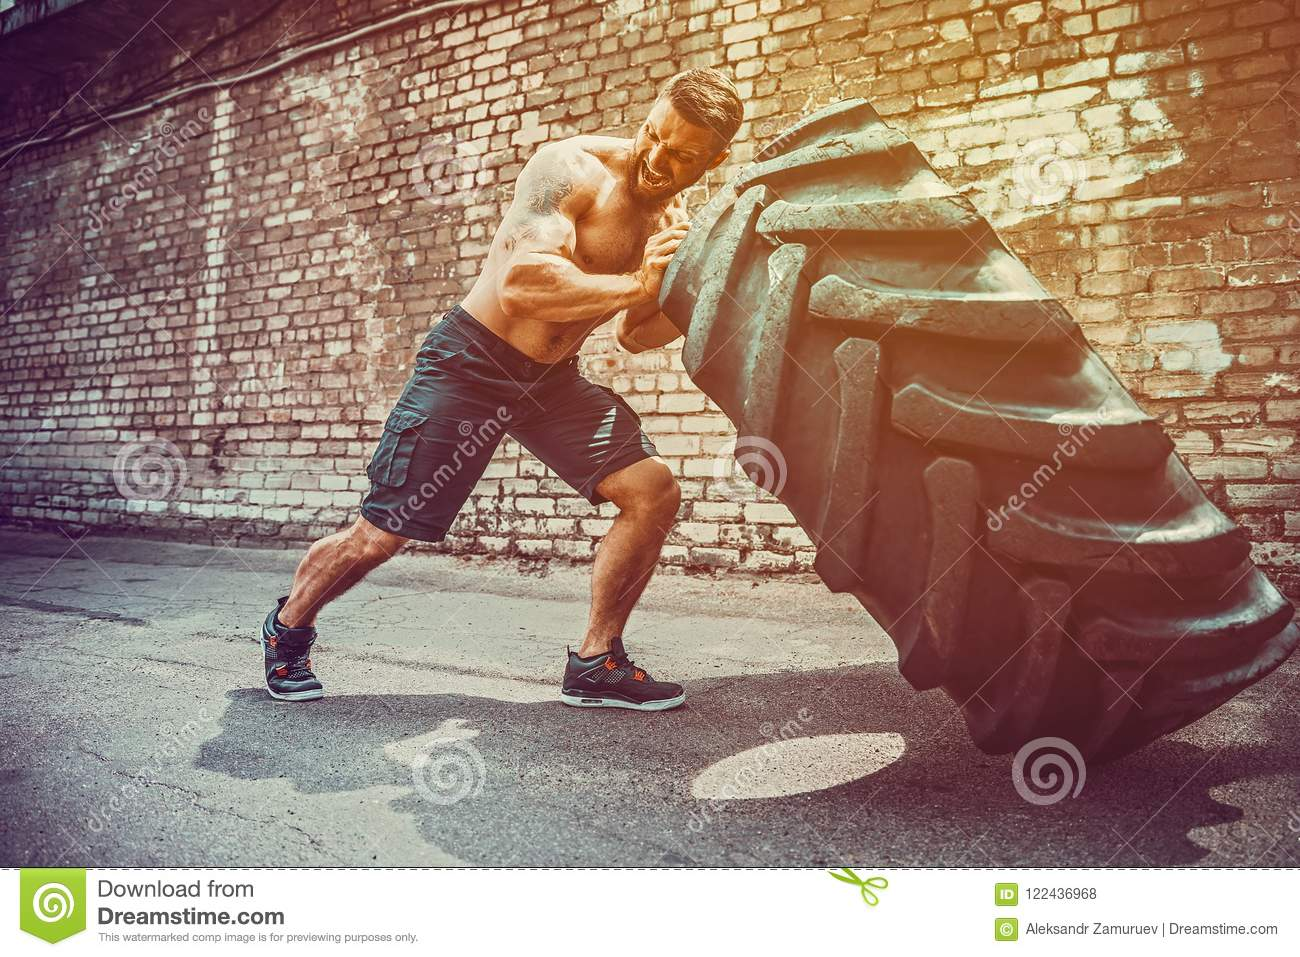 Muscular fitness shirtless man moving large tire in gym center, concept lifting, workout cross fit training